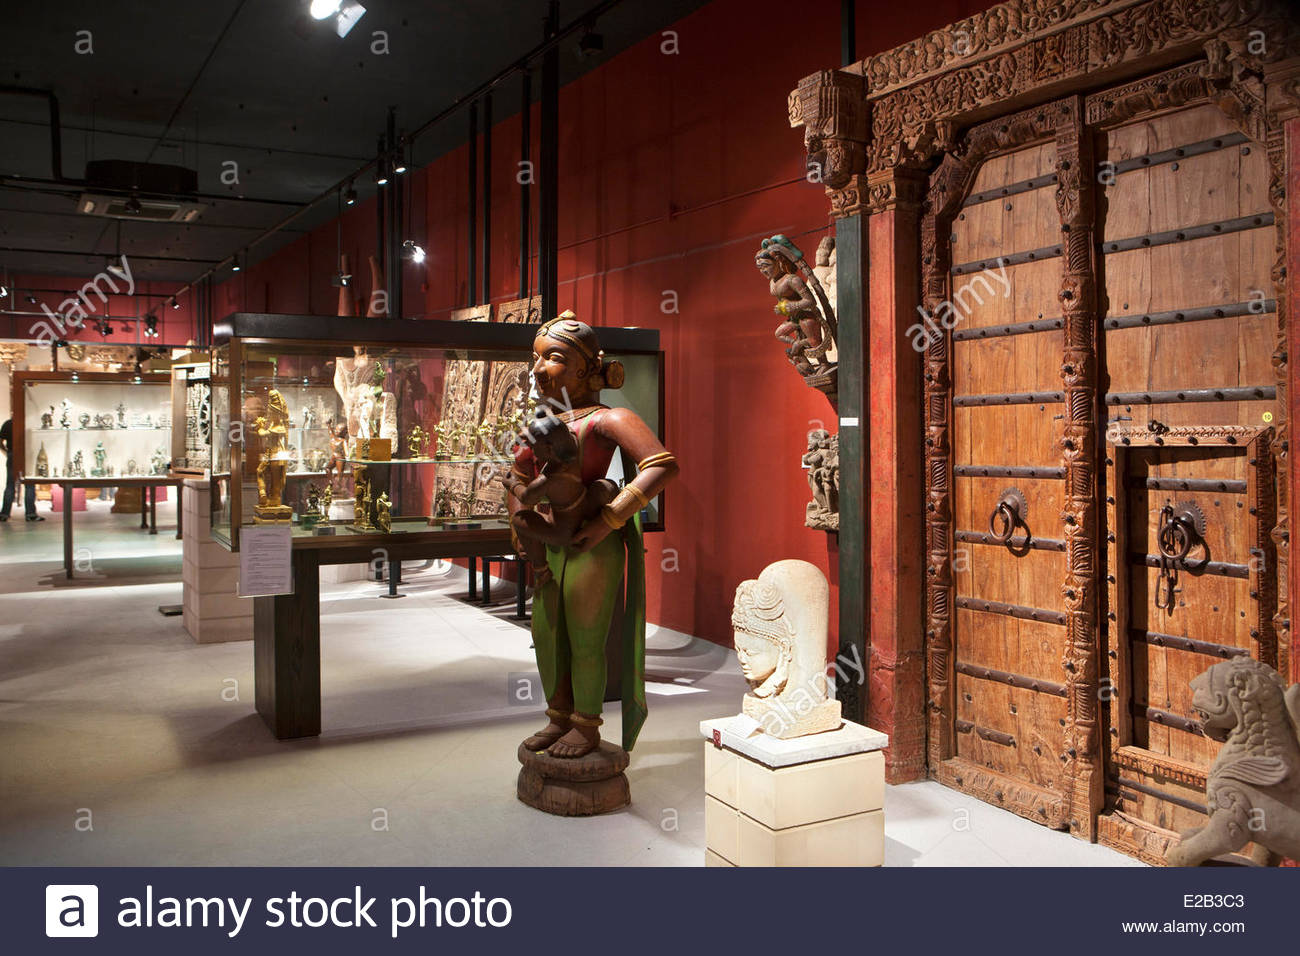 France, Pyrenees Atlantiques, Basque Country, Biarritz, Asiatica museum, museum of Asian Art - Stock Image